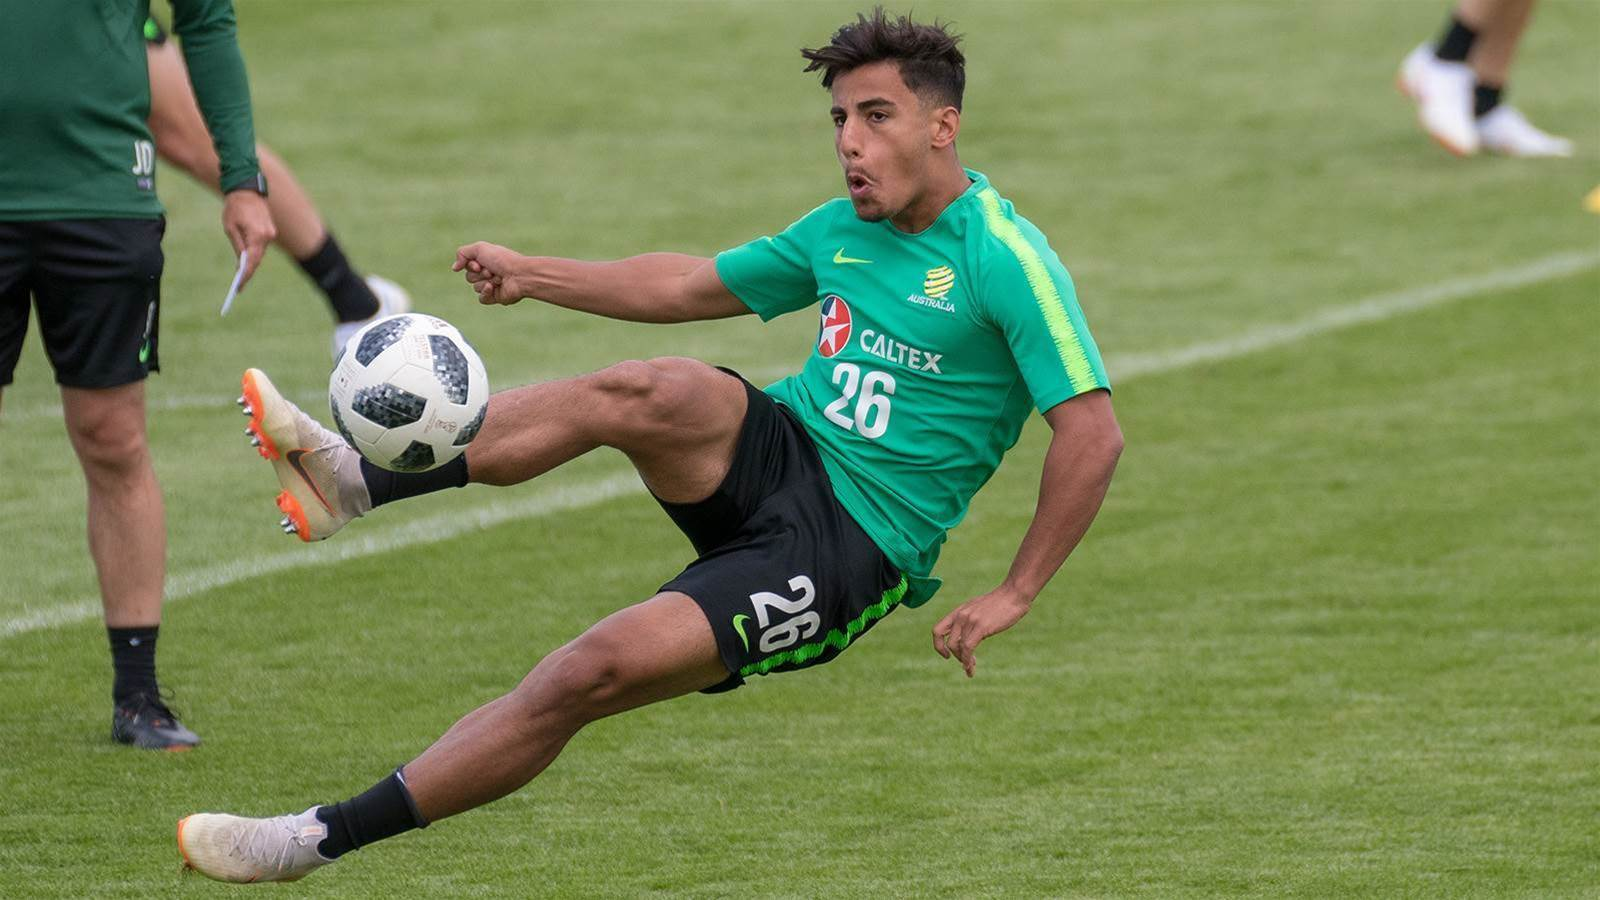 """Arzani on playing in the World Cup: """"Jesus Christ, this is pretty cool...'"""